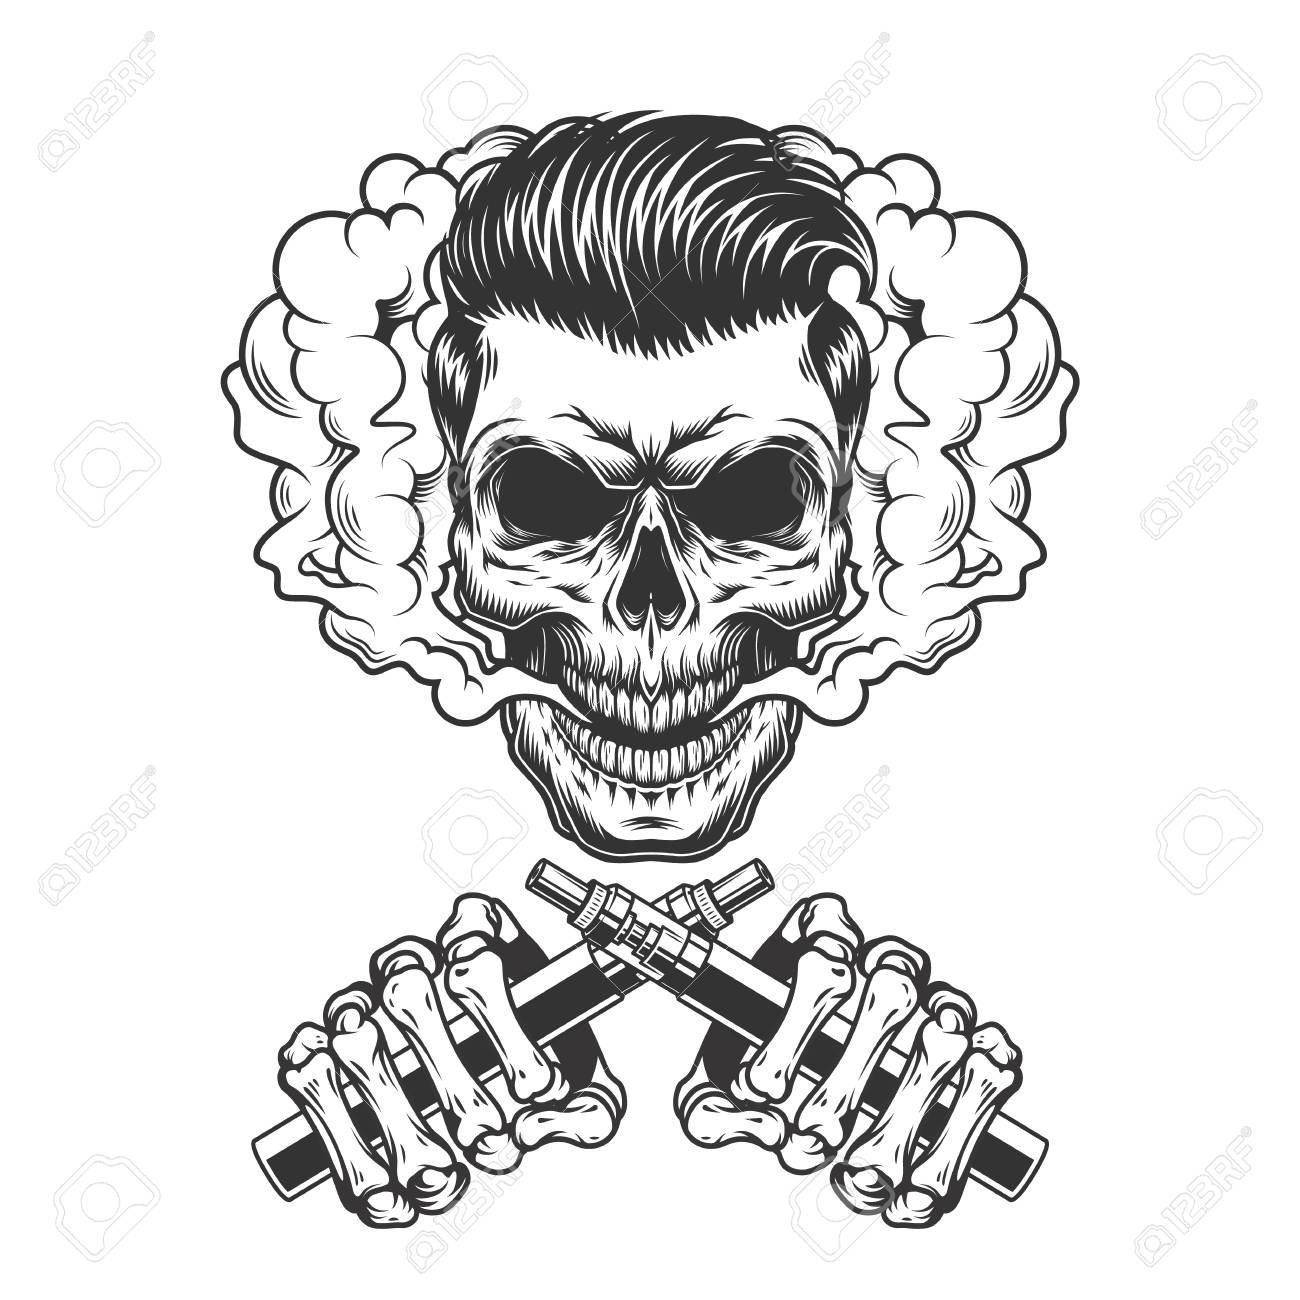 Vintage monochrome vaping concept with hipster skull in smoke